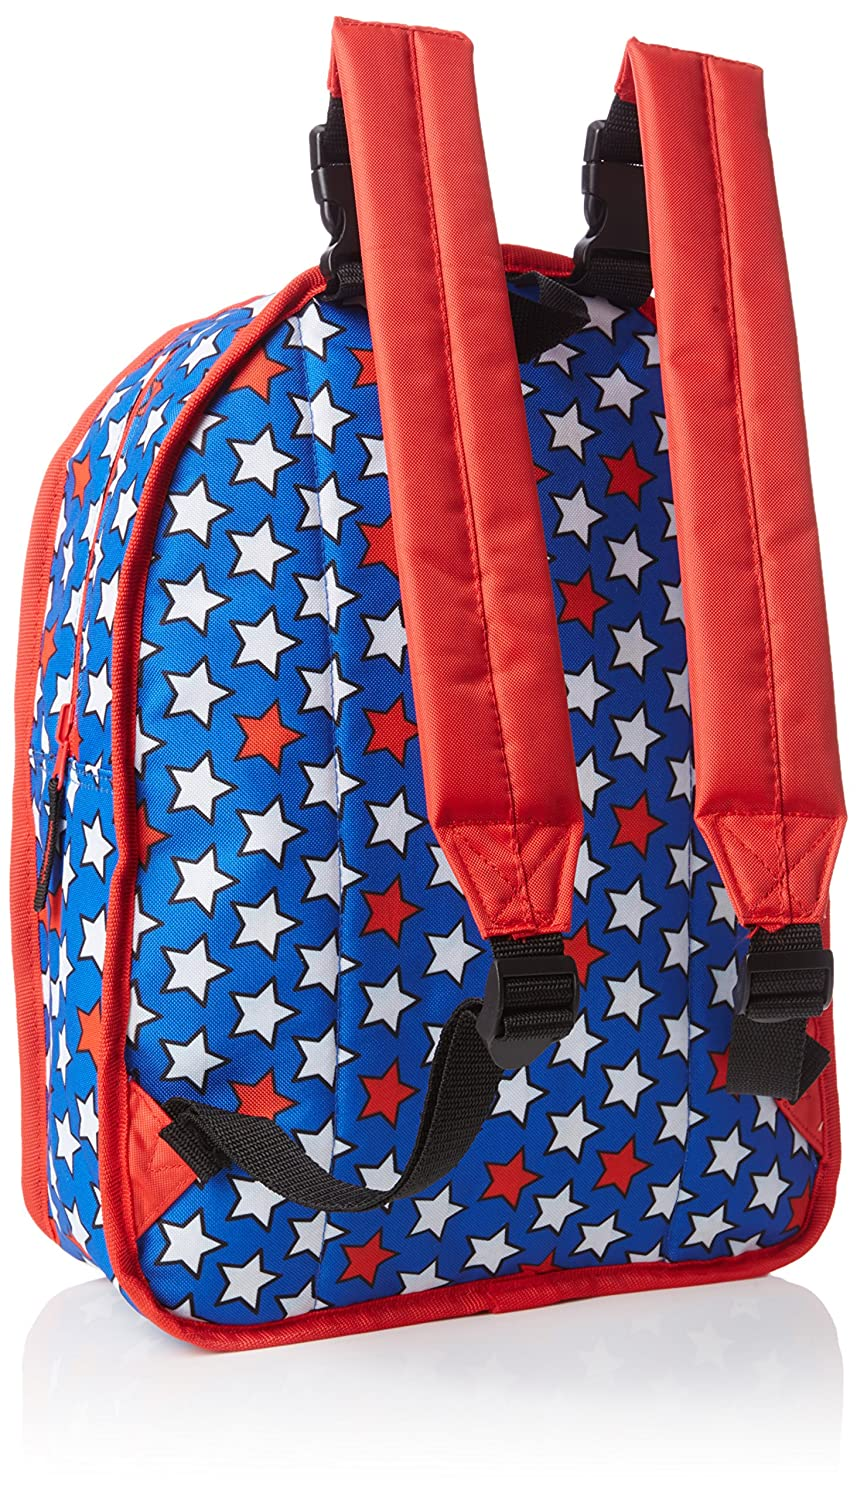 Amazon.com : Wonder Woman Reversible Backpack : Movie And Tv Fan Apparel Accessories : Sports & Outdoors